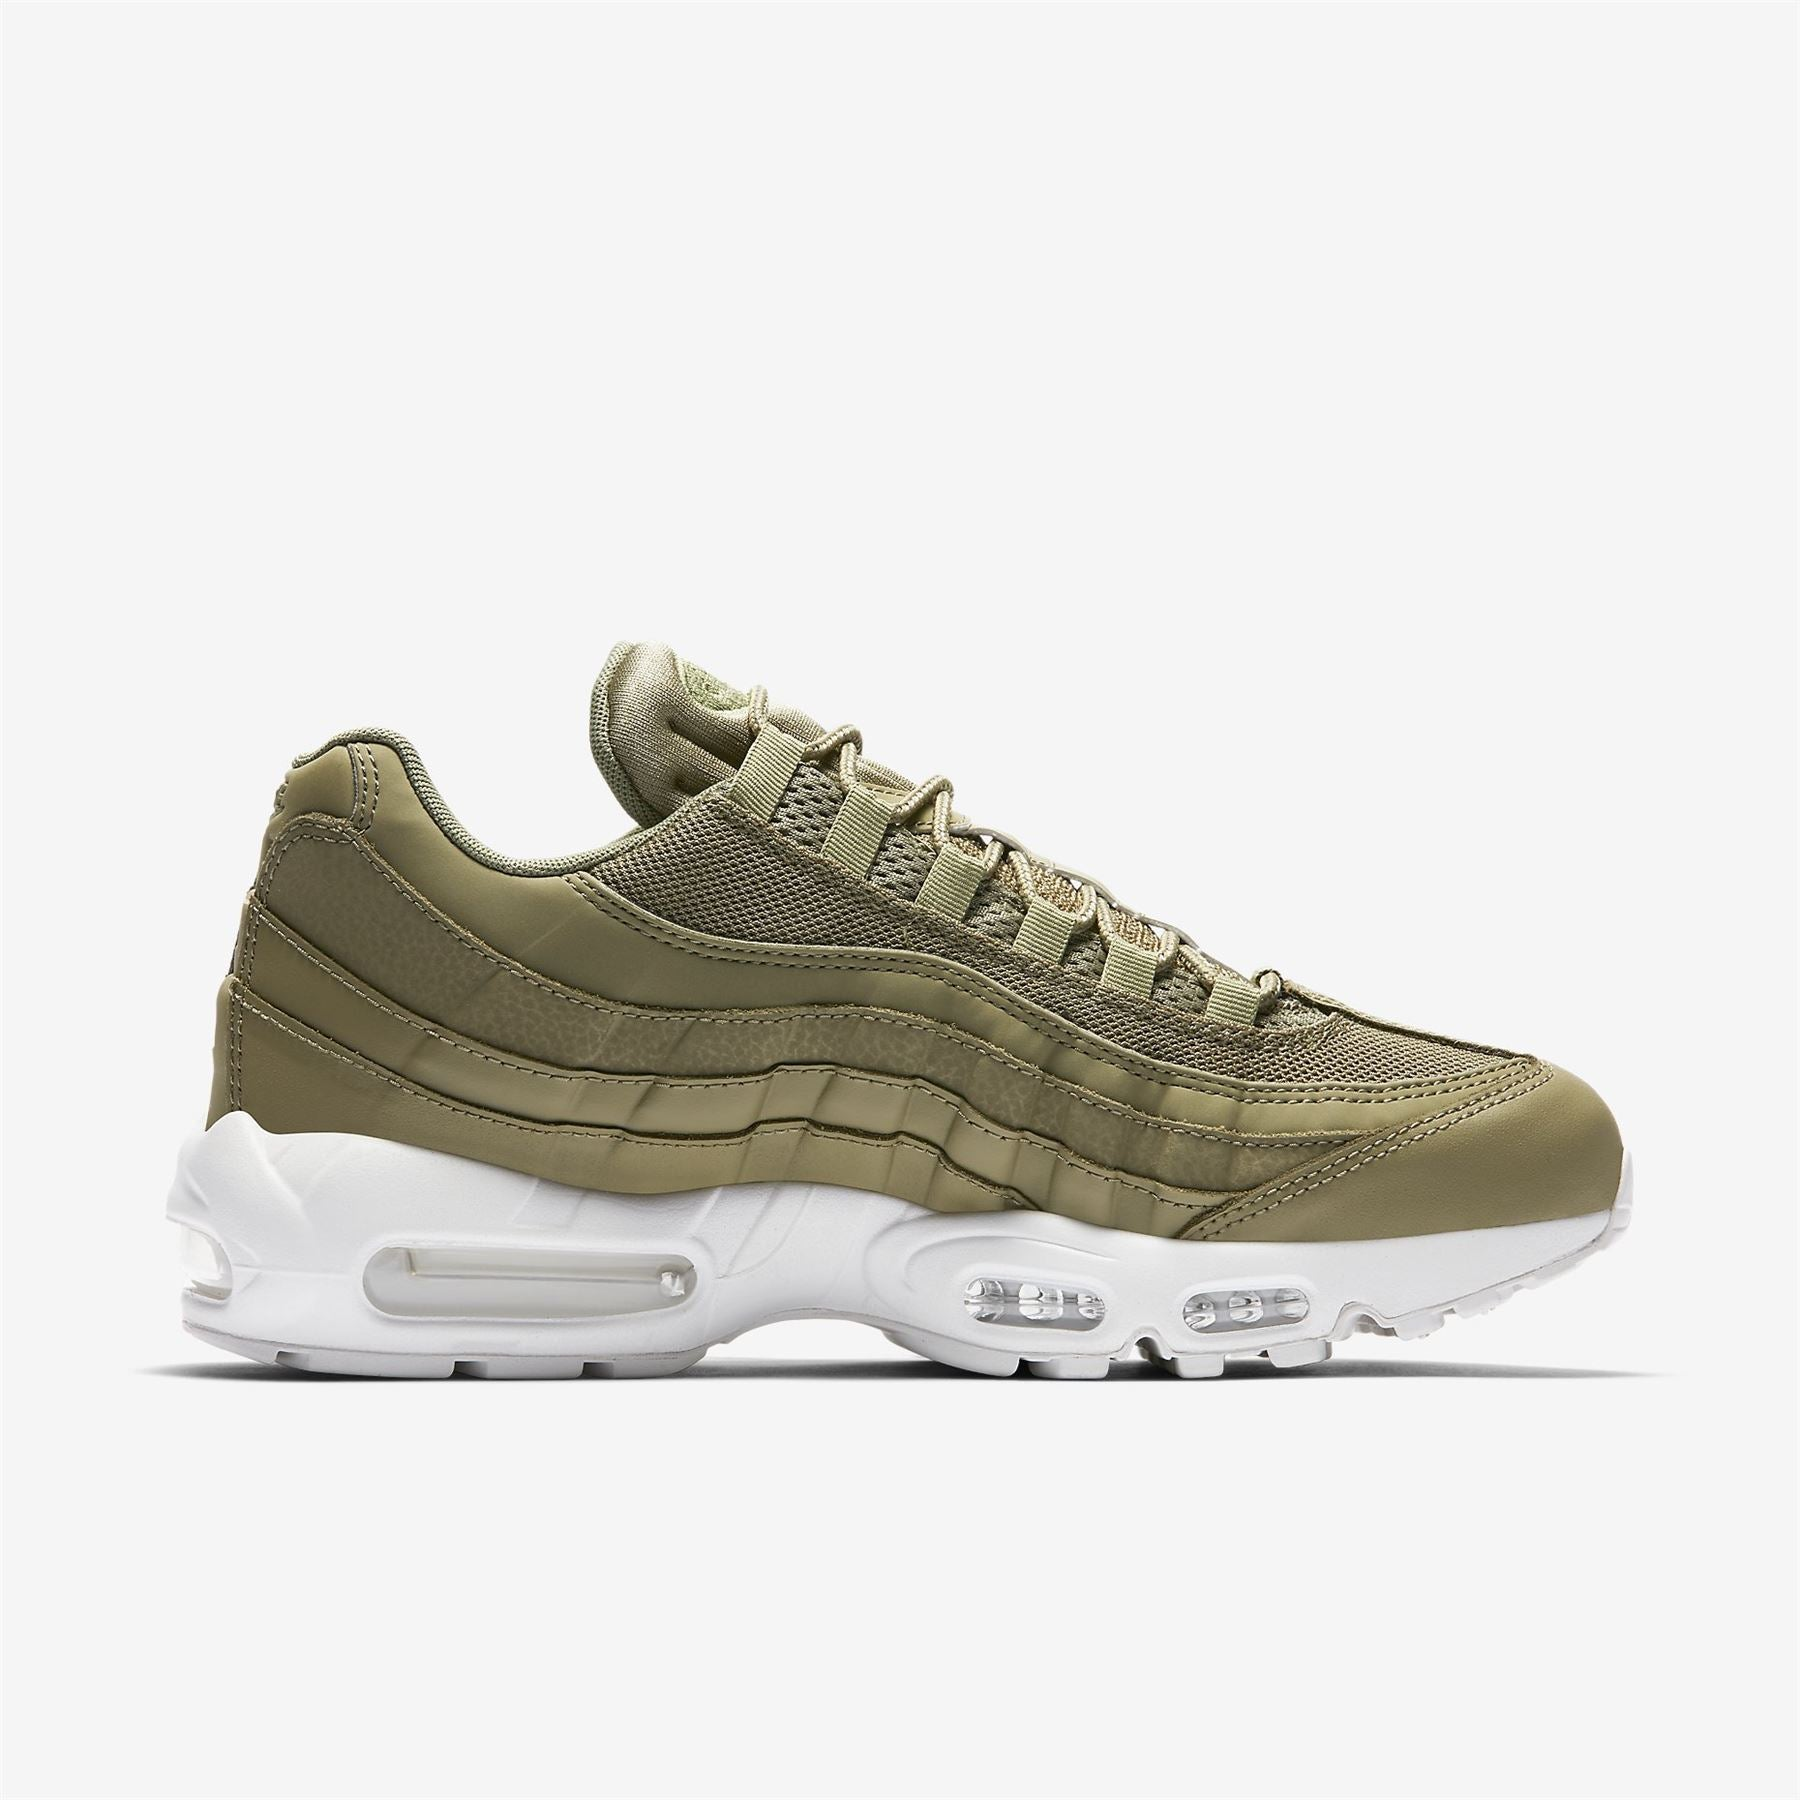 NIKE AIR MAX 95 ESSENTIAL 749766 201 KHAKI